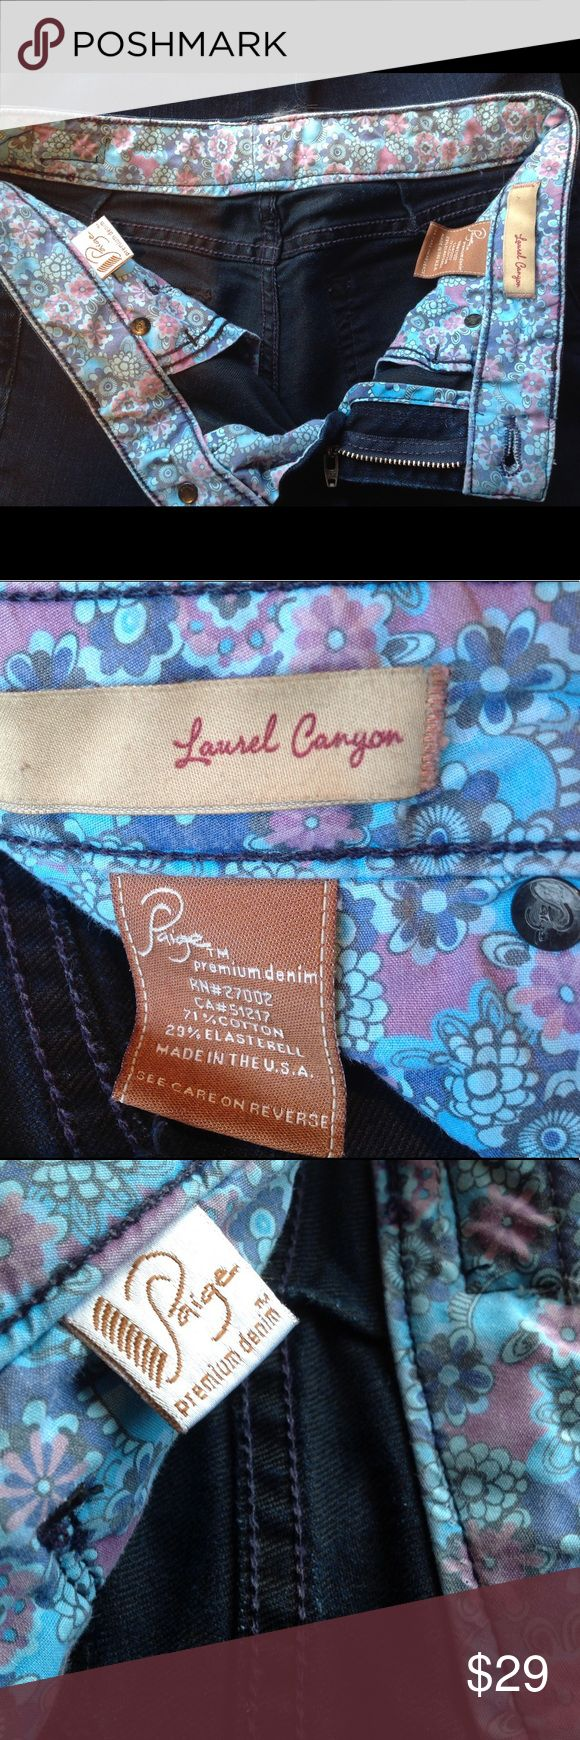 """PAGE PREMIUM DENIM LAUREL CANYON JEANS SIZE 5/6 PAIGE PREMIUM DENIM WOMEN'S JEANS """"LAUREL CANYON"""" SIZE 5/6 RISE 7"""" LEG OPENING 8""""  WAIST 13"""" COMES FROM A SMOKE FREE HOME. (205) Paige Jeans Jeans Boot Cut"""